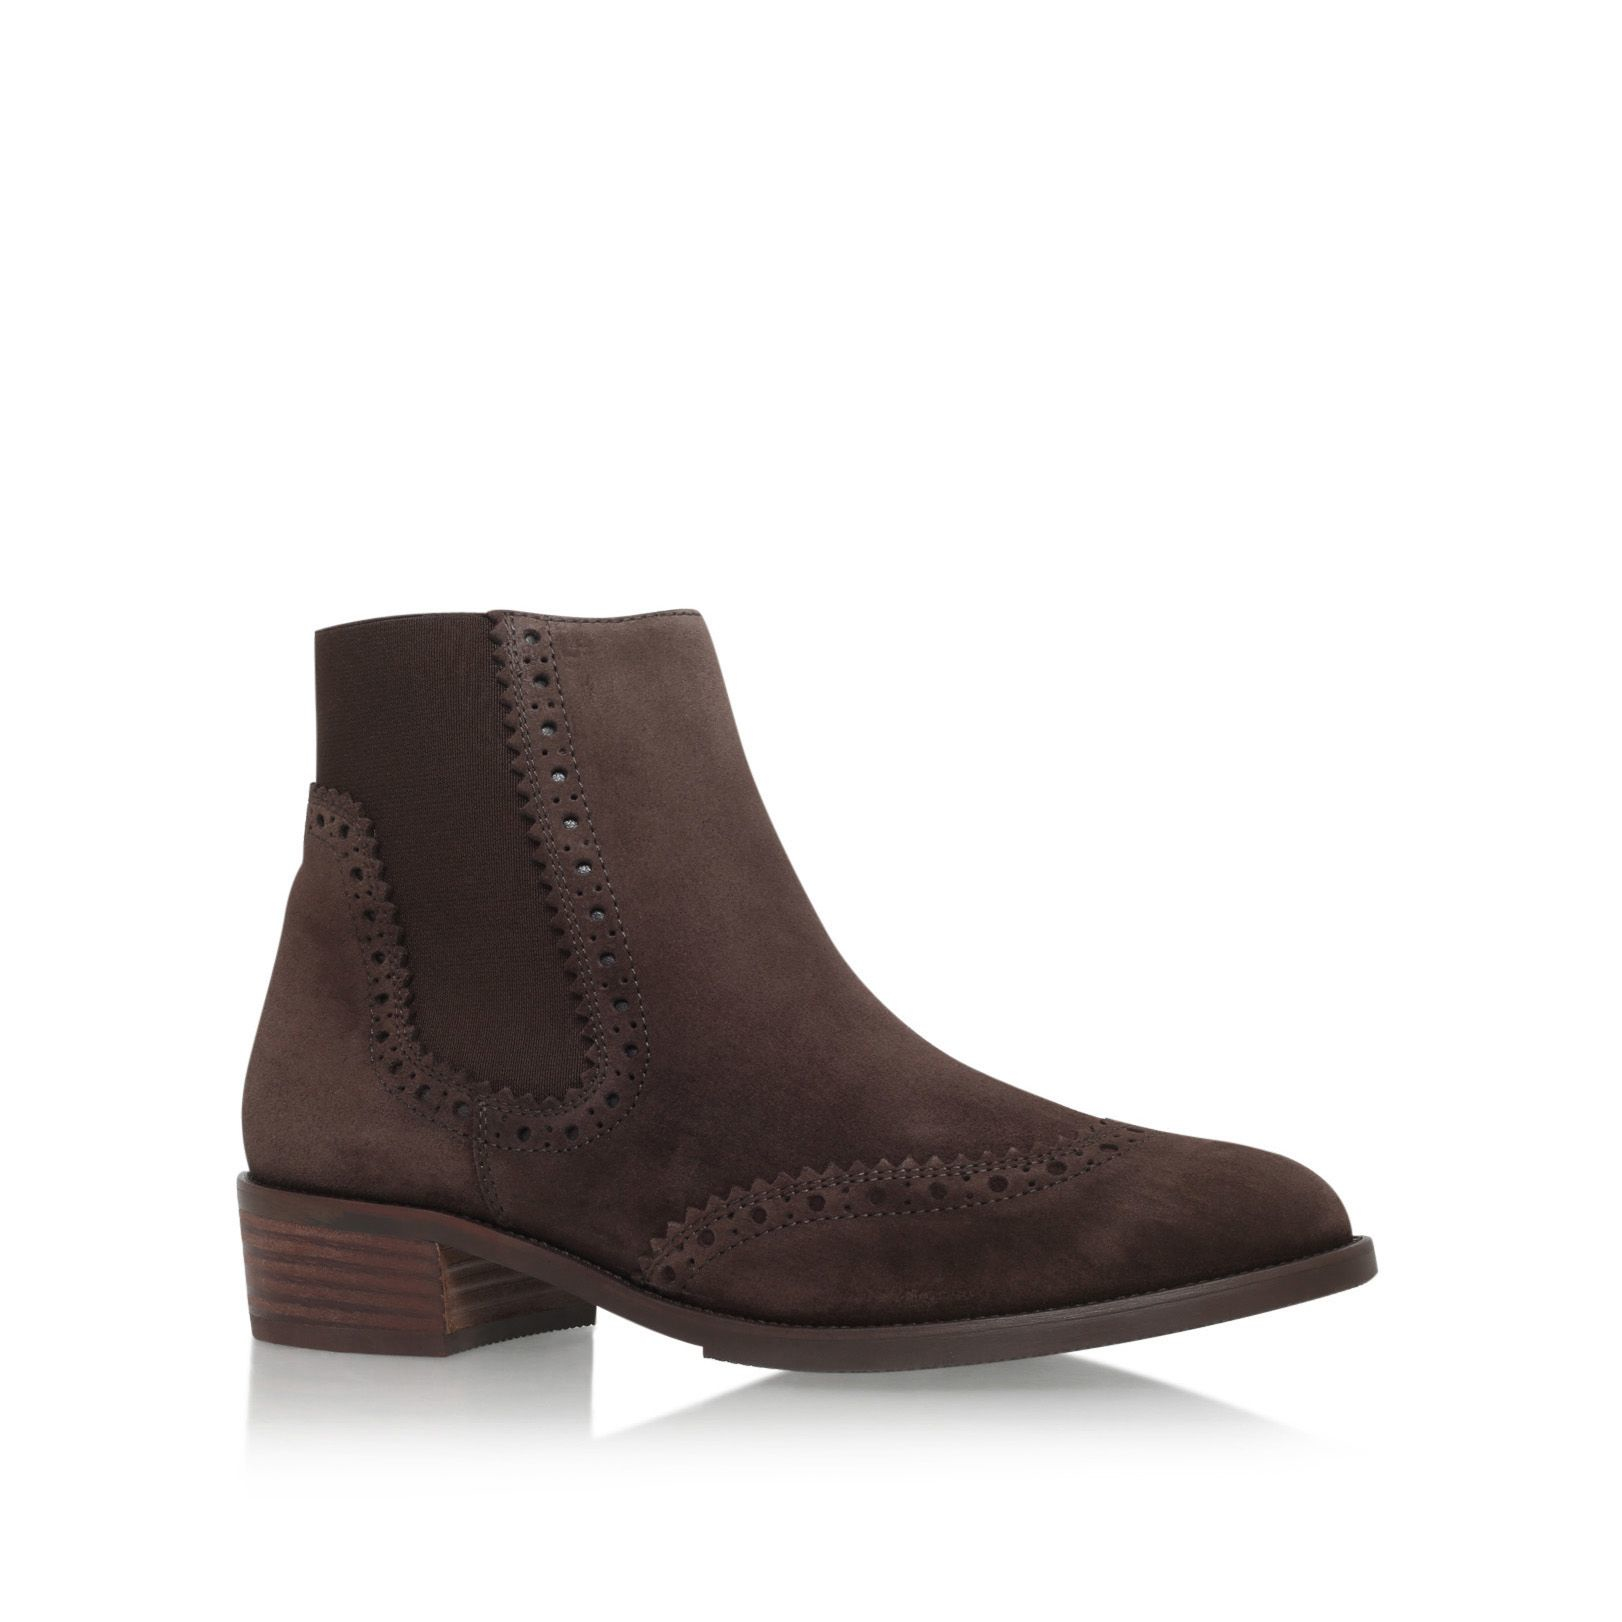 paul green may low heel ankle boots in brown lyst. Black Bedroom Furniture Sets. Home Design Ideas